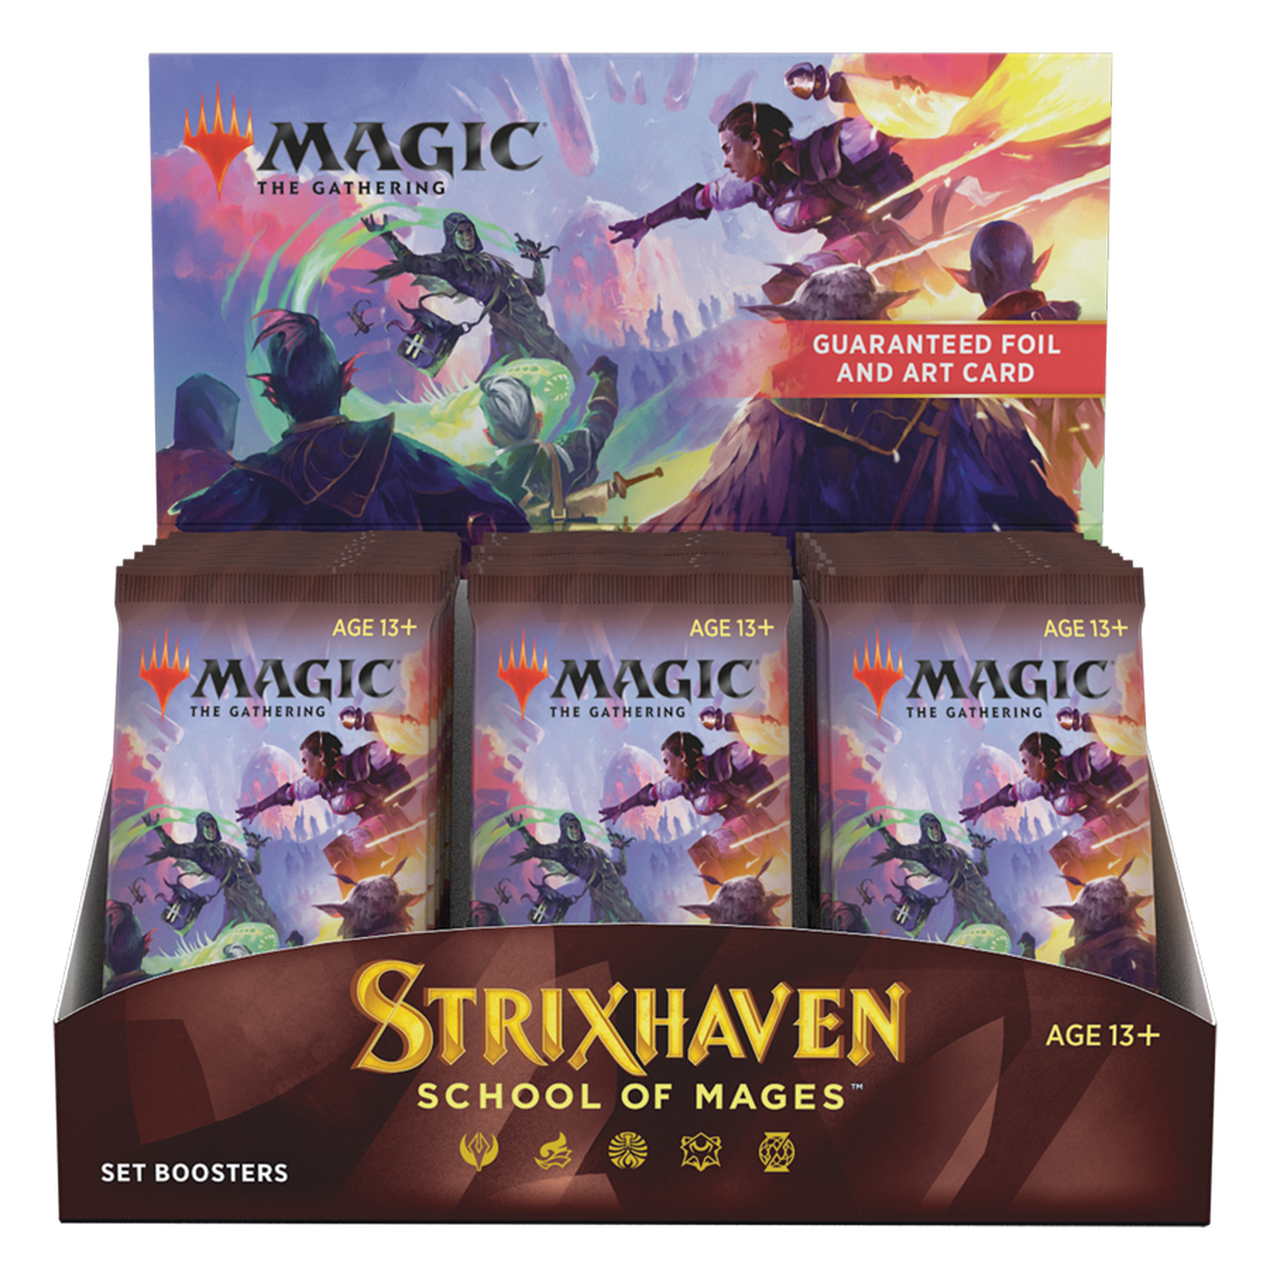 Strixhaven School of Mages | Set Boosters | Magic the Gathering